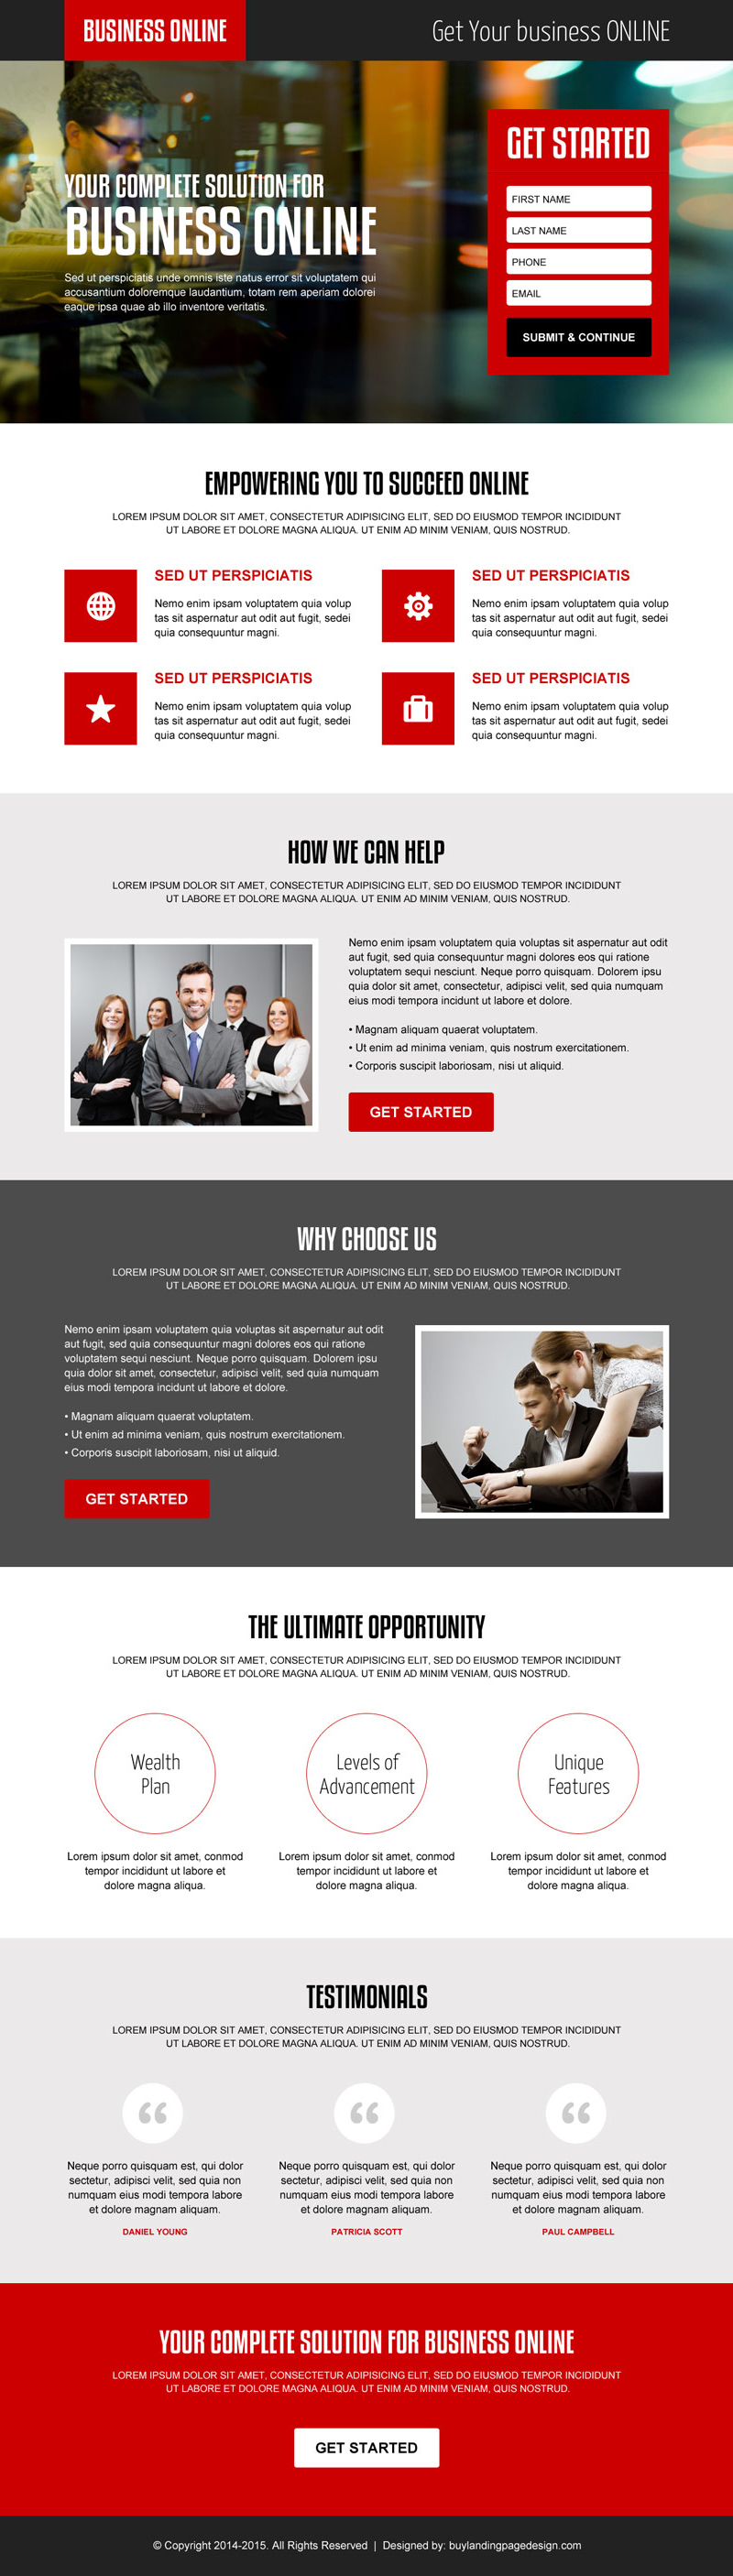 online-business-leads-conversion-landing-page-design-to-boost-your-business-with-leads-and-sales-040